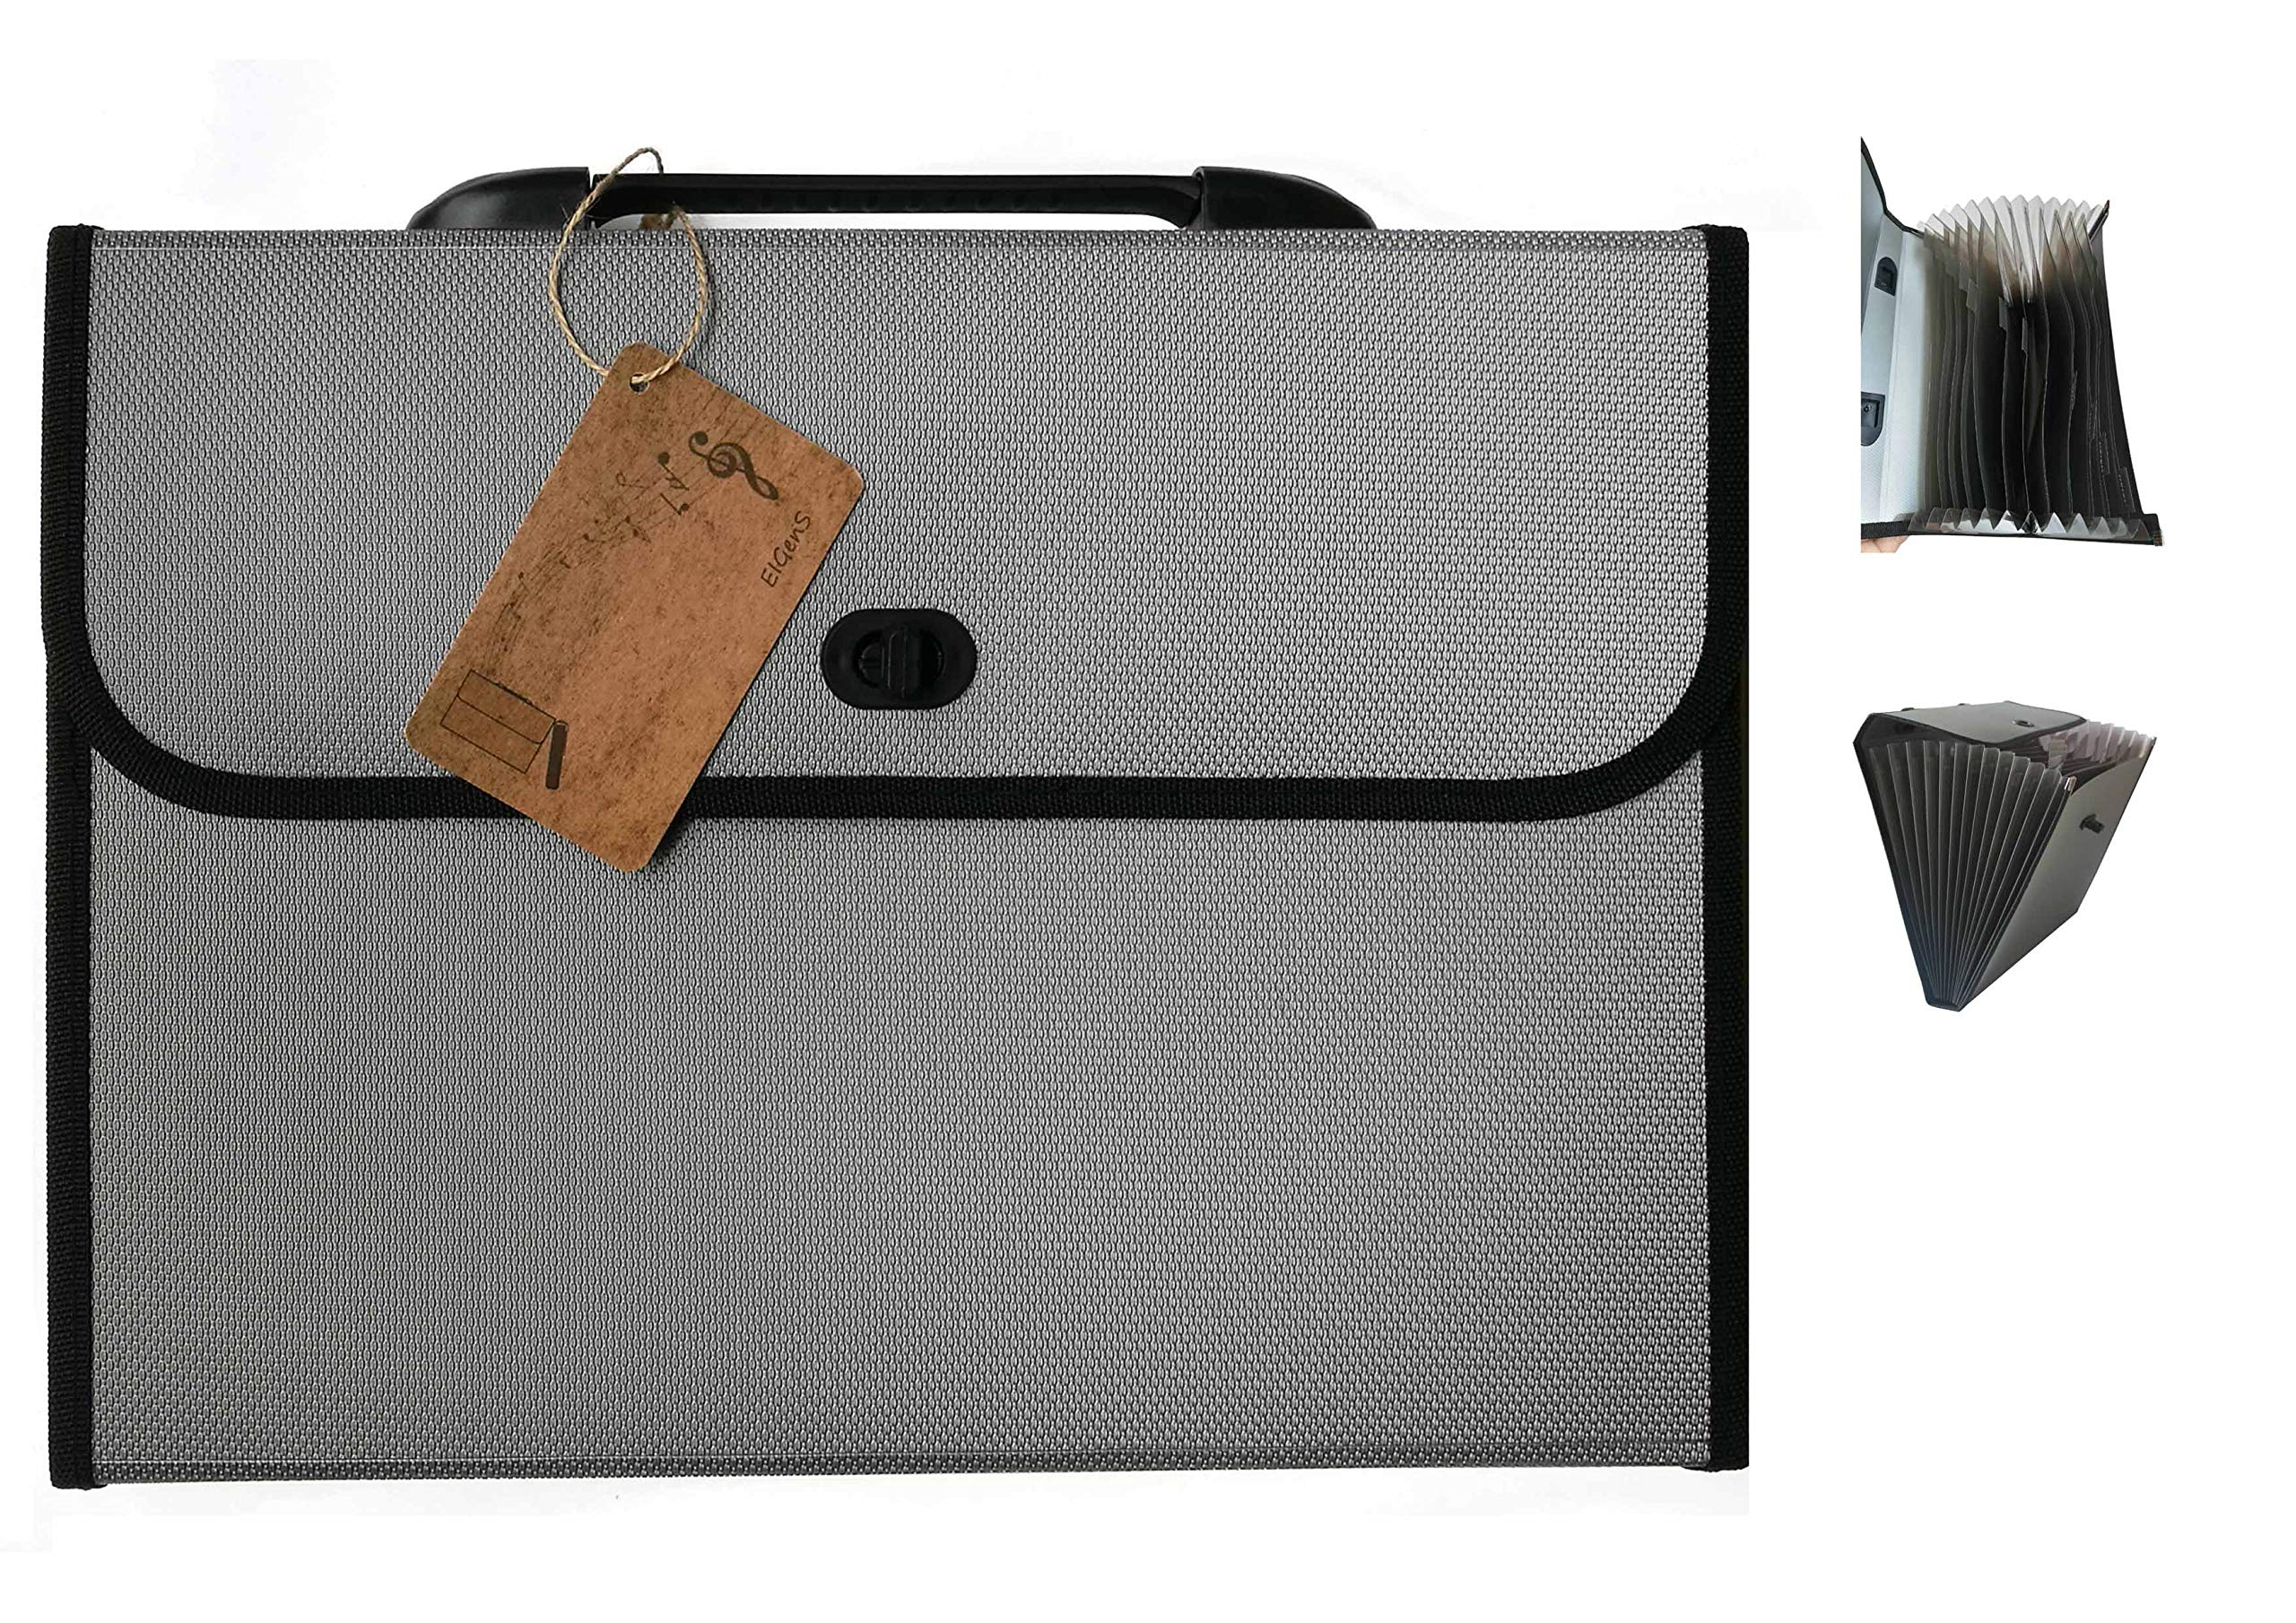 EIGenS 13 Pockets Expanding File Folder with Handle - A4 Size Expandable File Organizer File Folder Wallet Briefcase Documents Filing Box